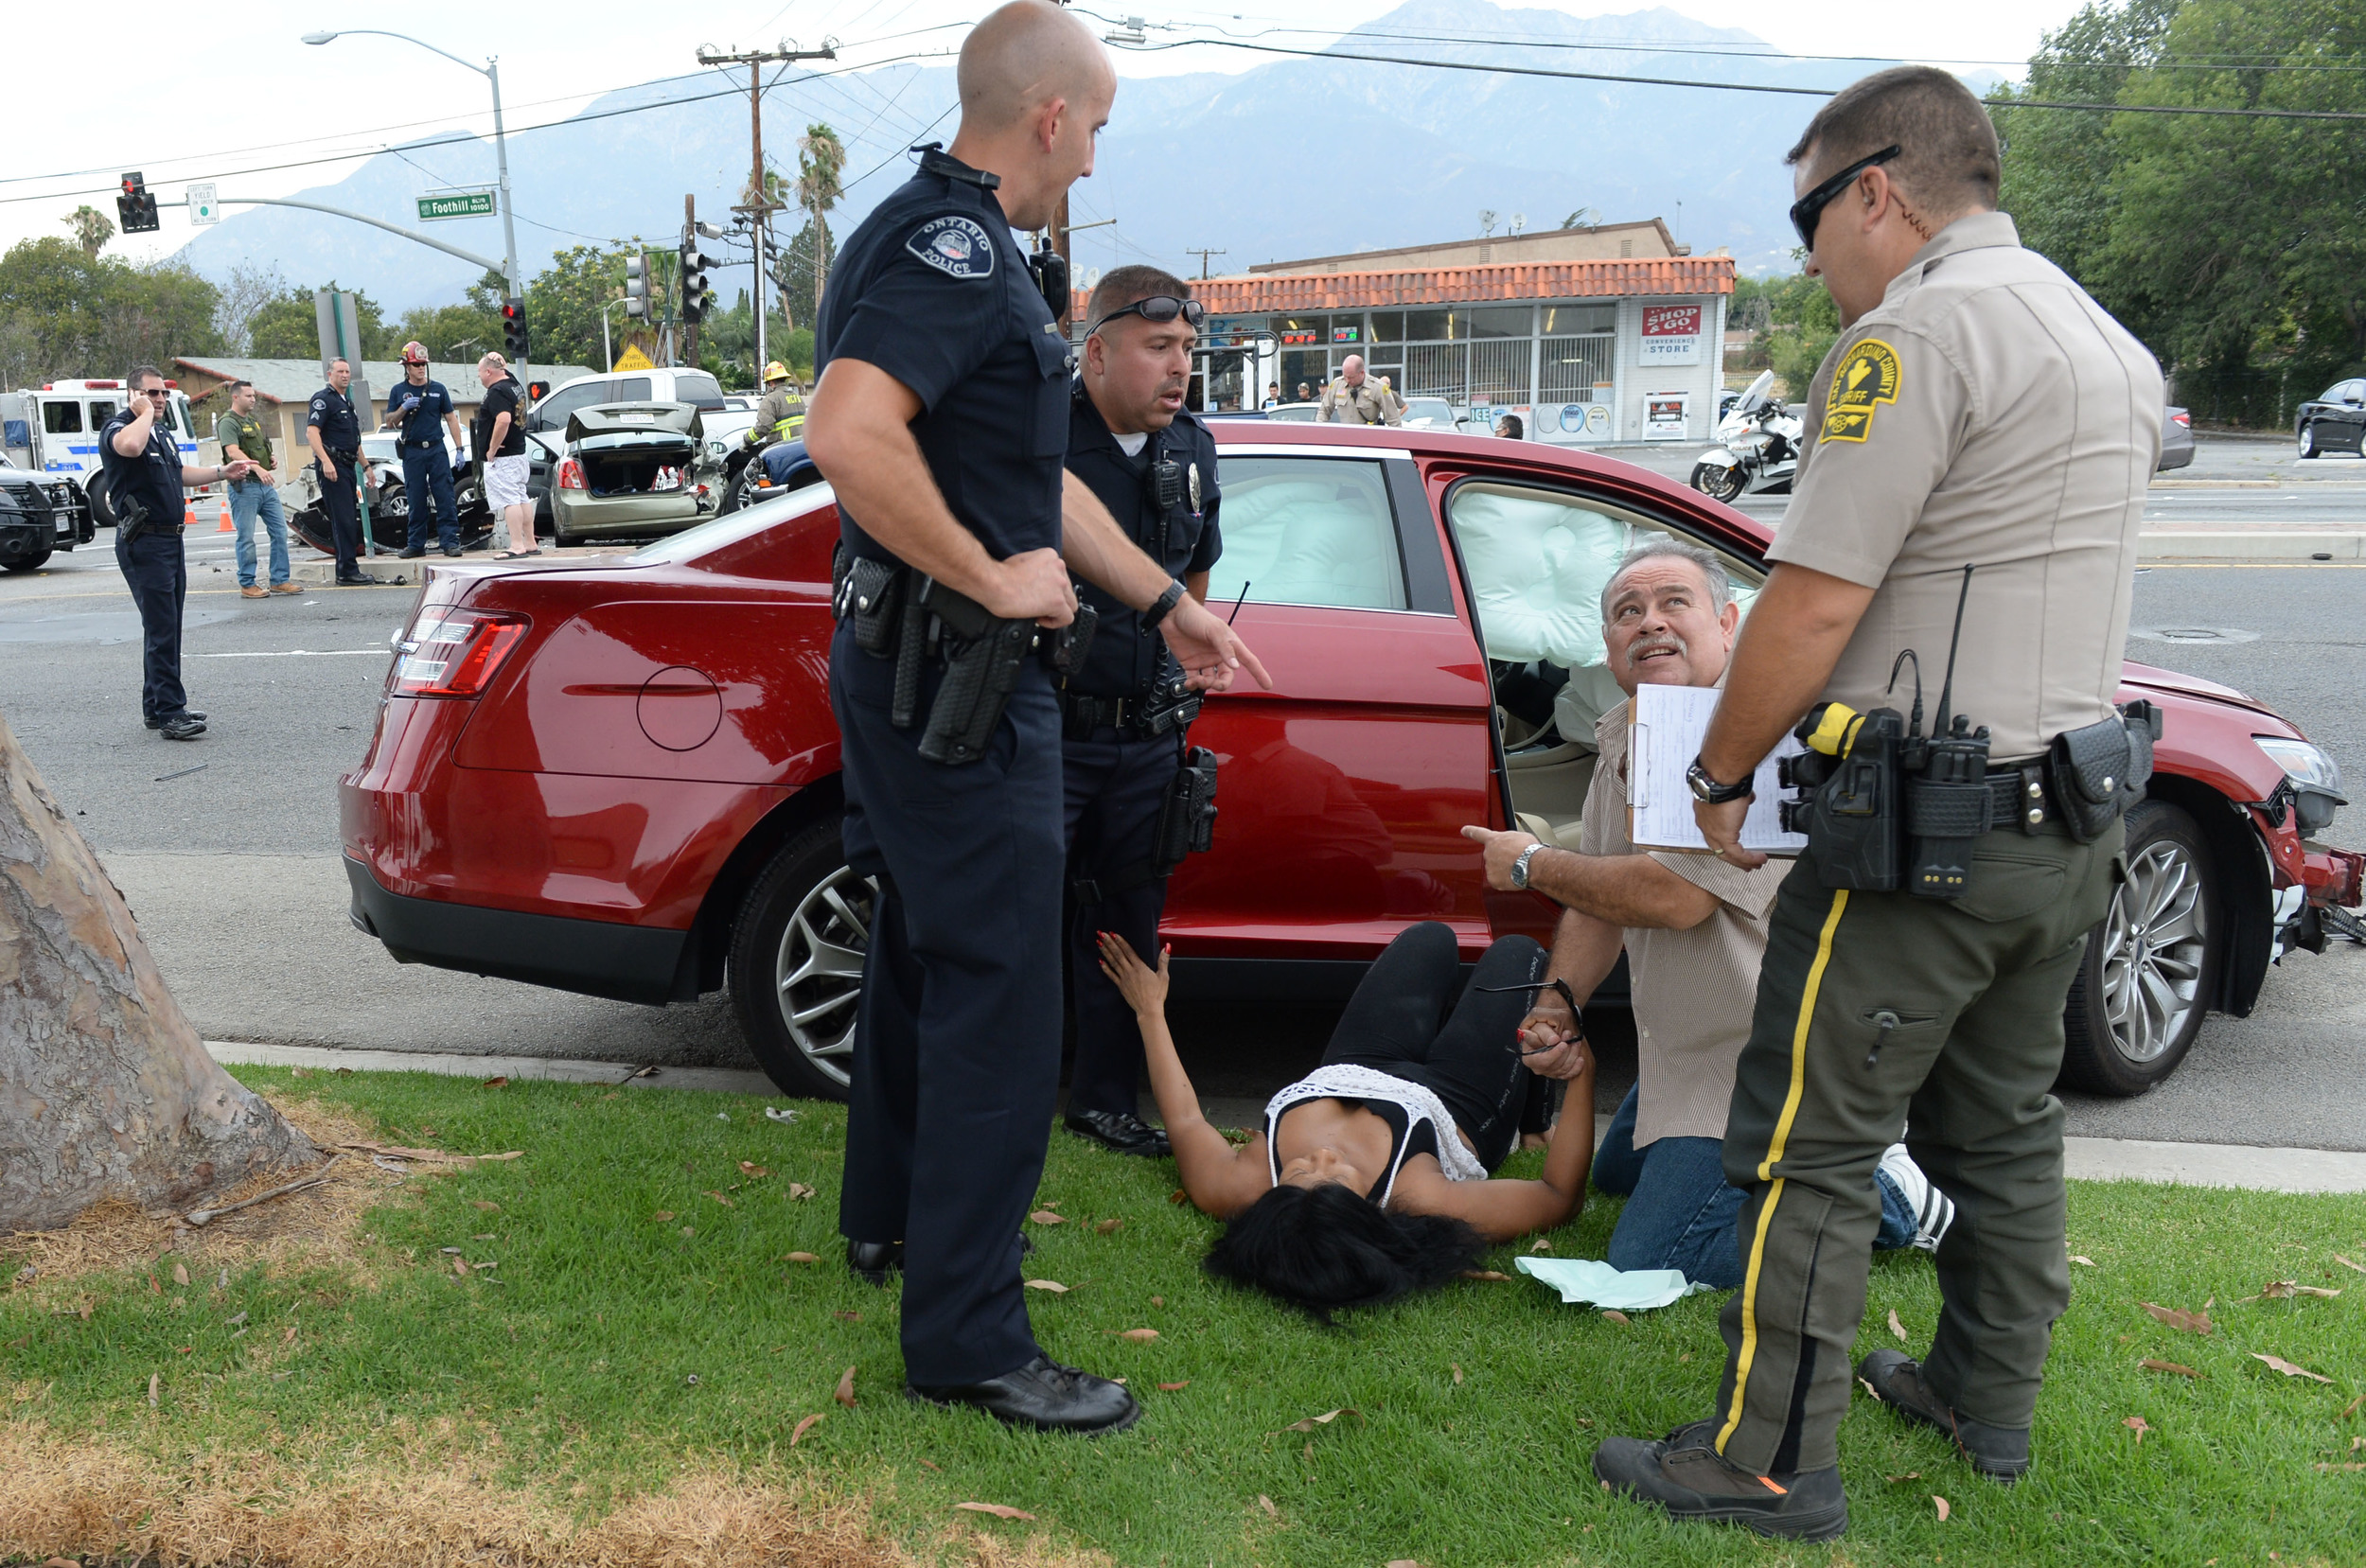 Two innocent motorists required to be transported to a local hospital following a crash at the corner of Hermosa Ave and Foothill Blvd. after a police pursuit which went through Ontario, Upland and Rancho Cucamonga Wednesday July 1, 2015. The crash involved 6 vehicles, including the suspects, who was taken into custody. There were a few other motorists injured at the scene but did not require transport.